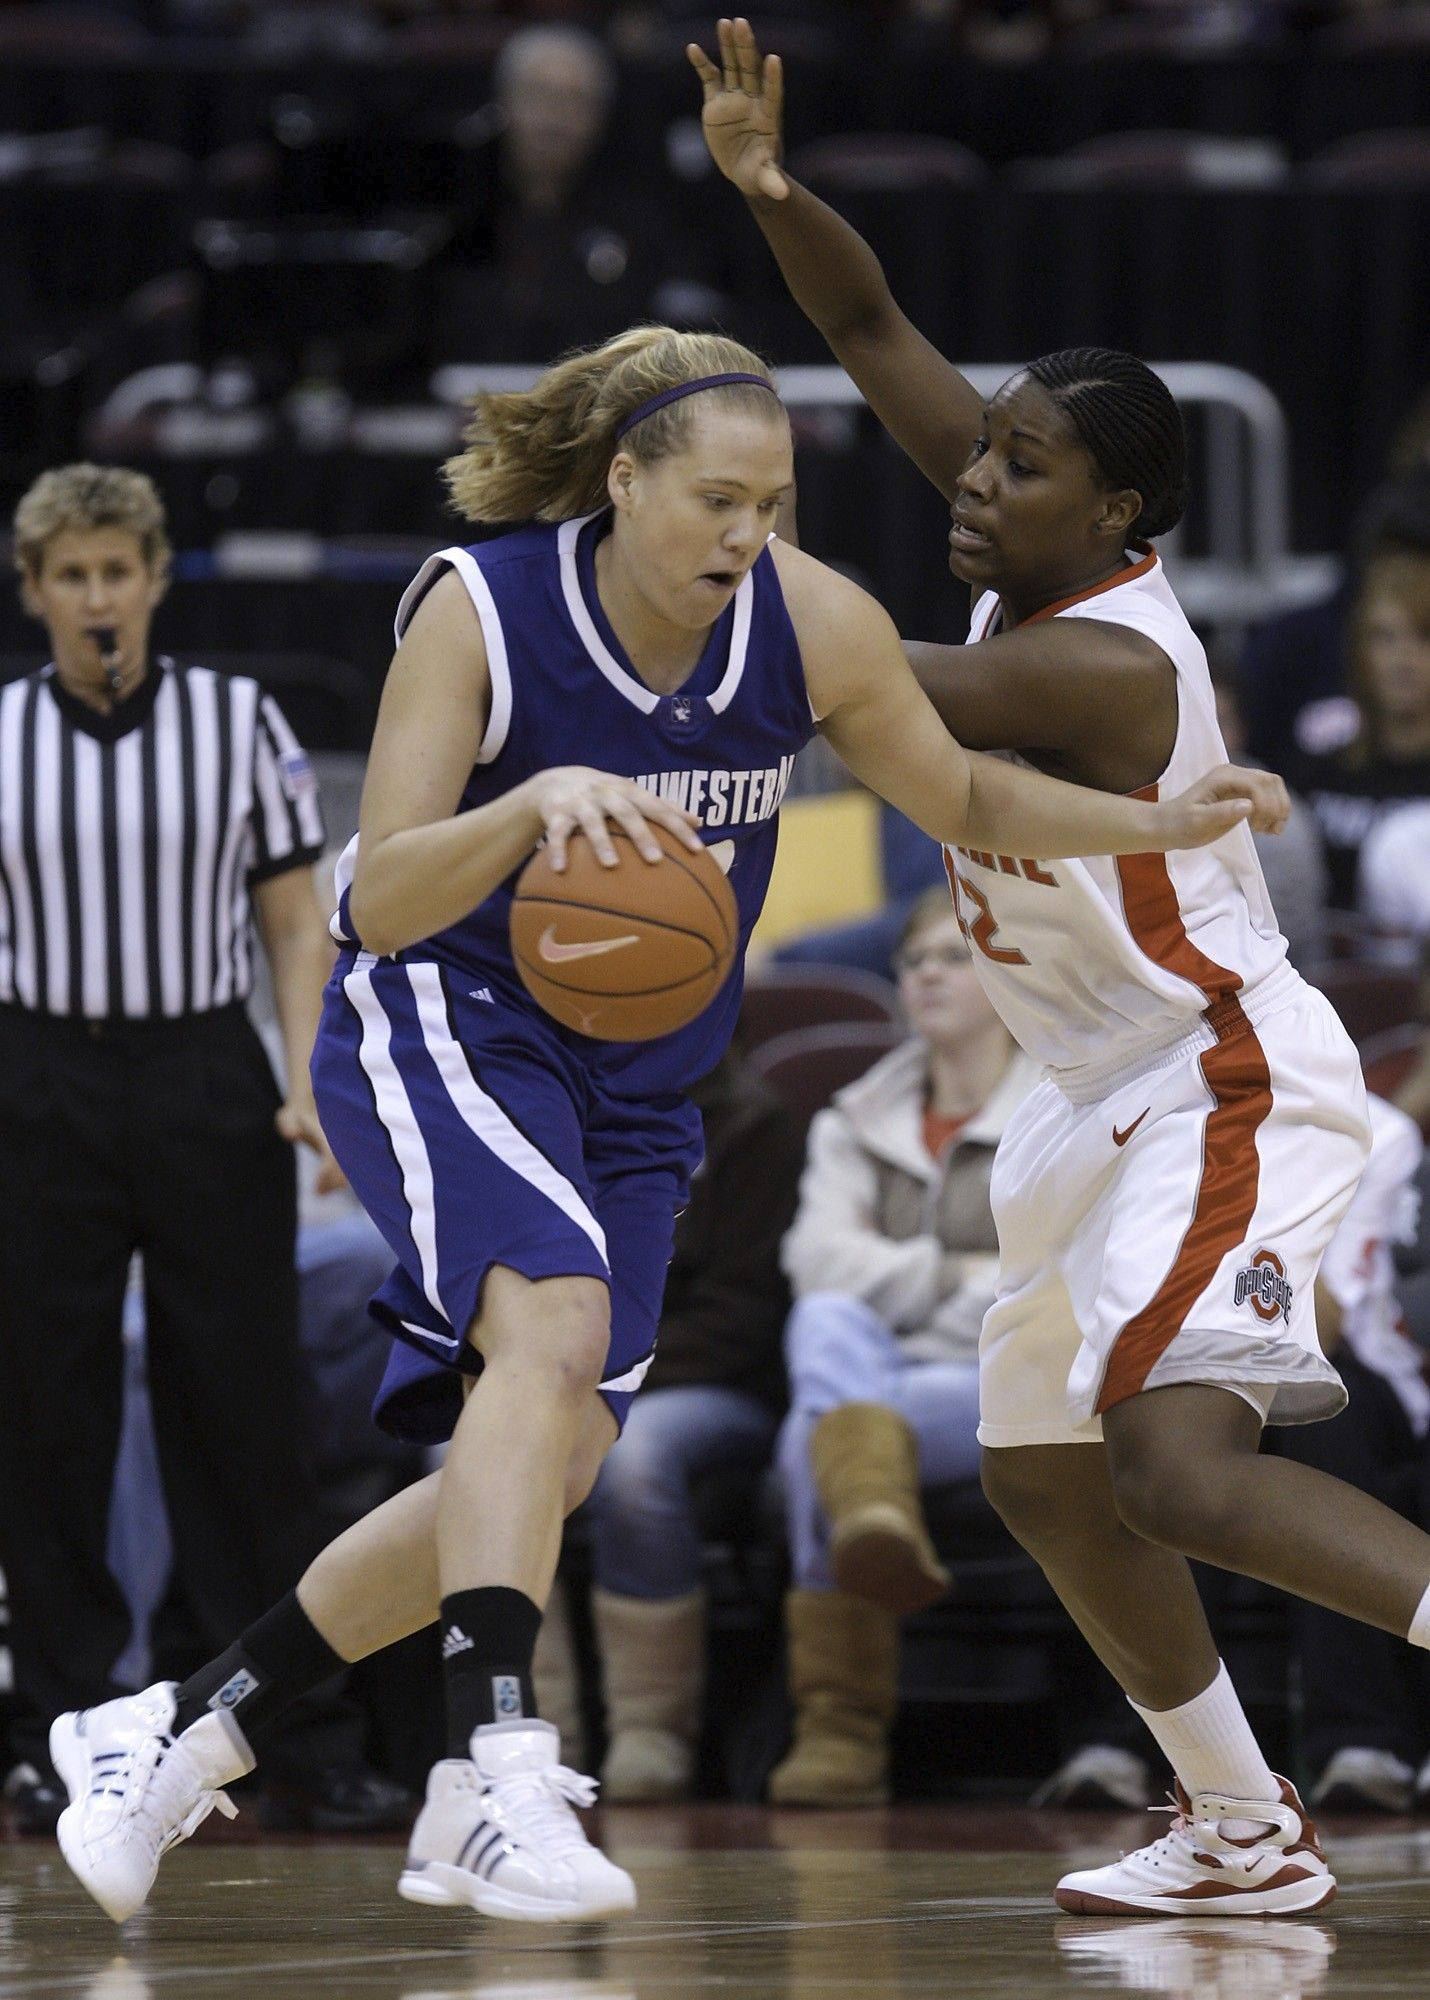 Northwestern's Amy Jaeschke, left, tries to dribble around Ohio State's Jantel Lavender during the first half of an NCAA college basketball game Sunday, Feb. 15, 2009, in Columbus, Ohio.